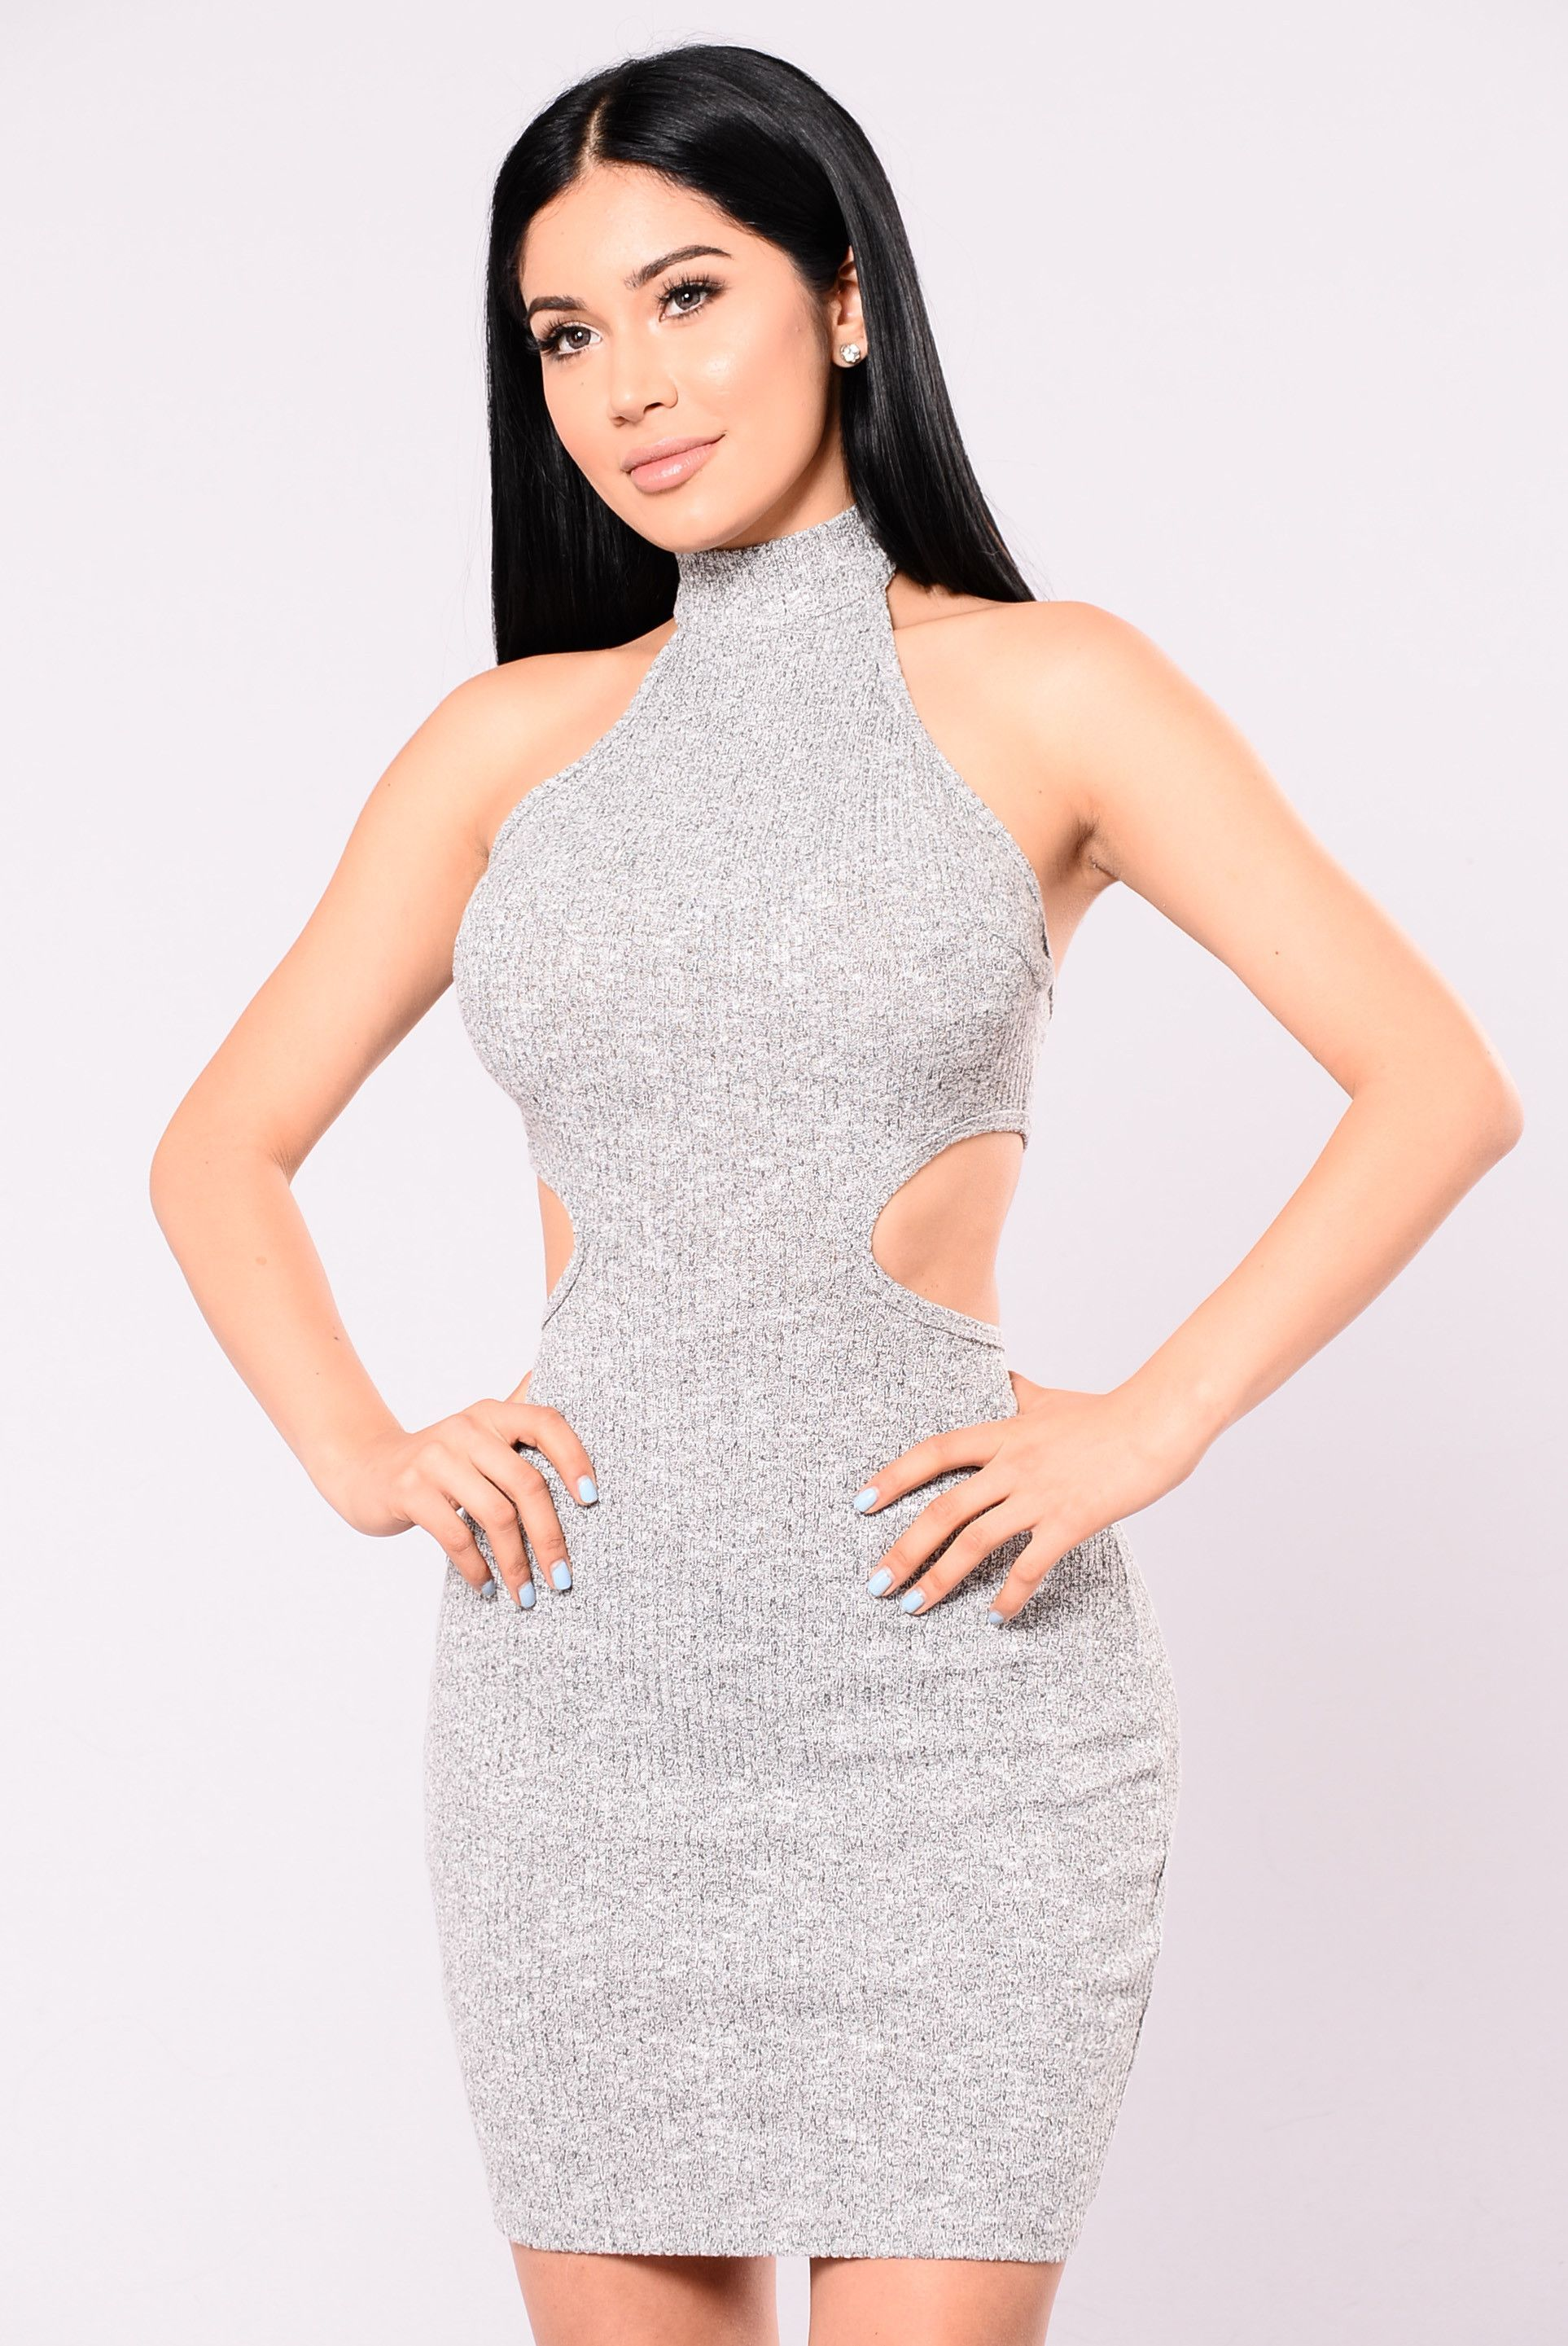 Back and fourth ribbed dress grey gray prom party and beauty women